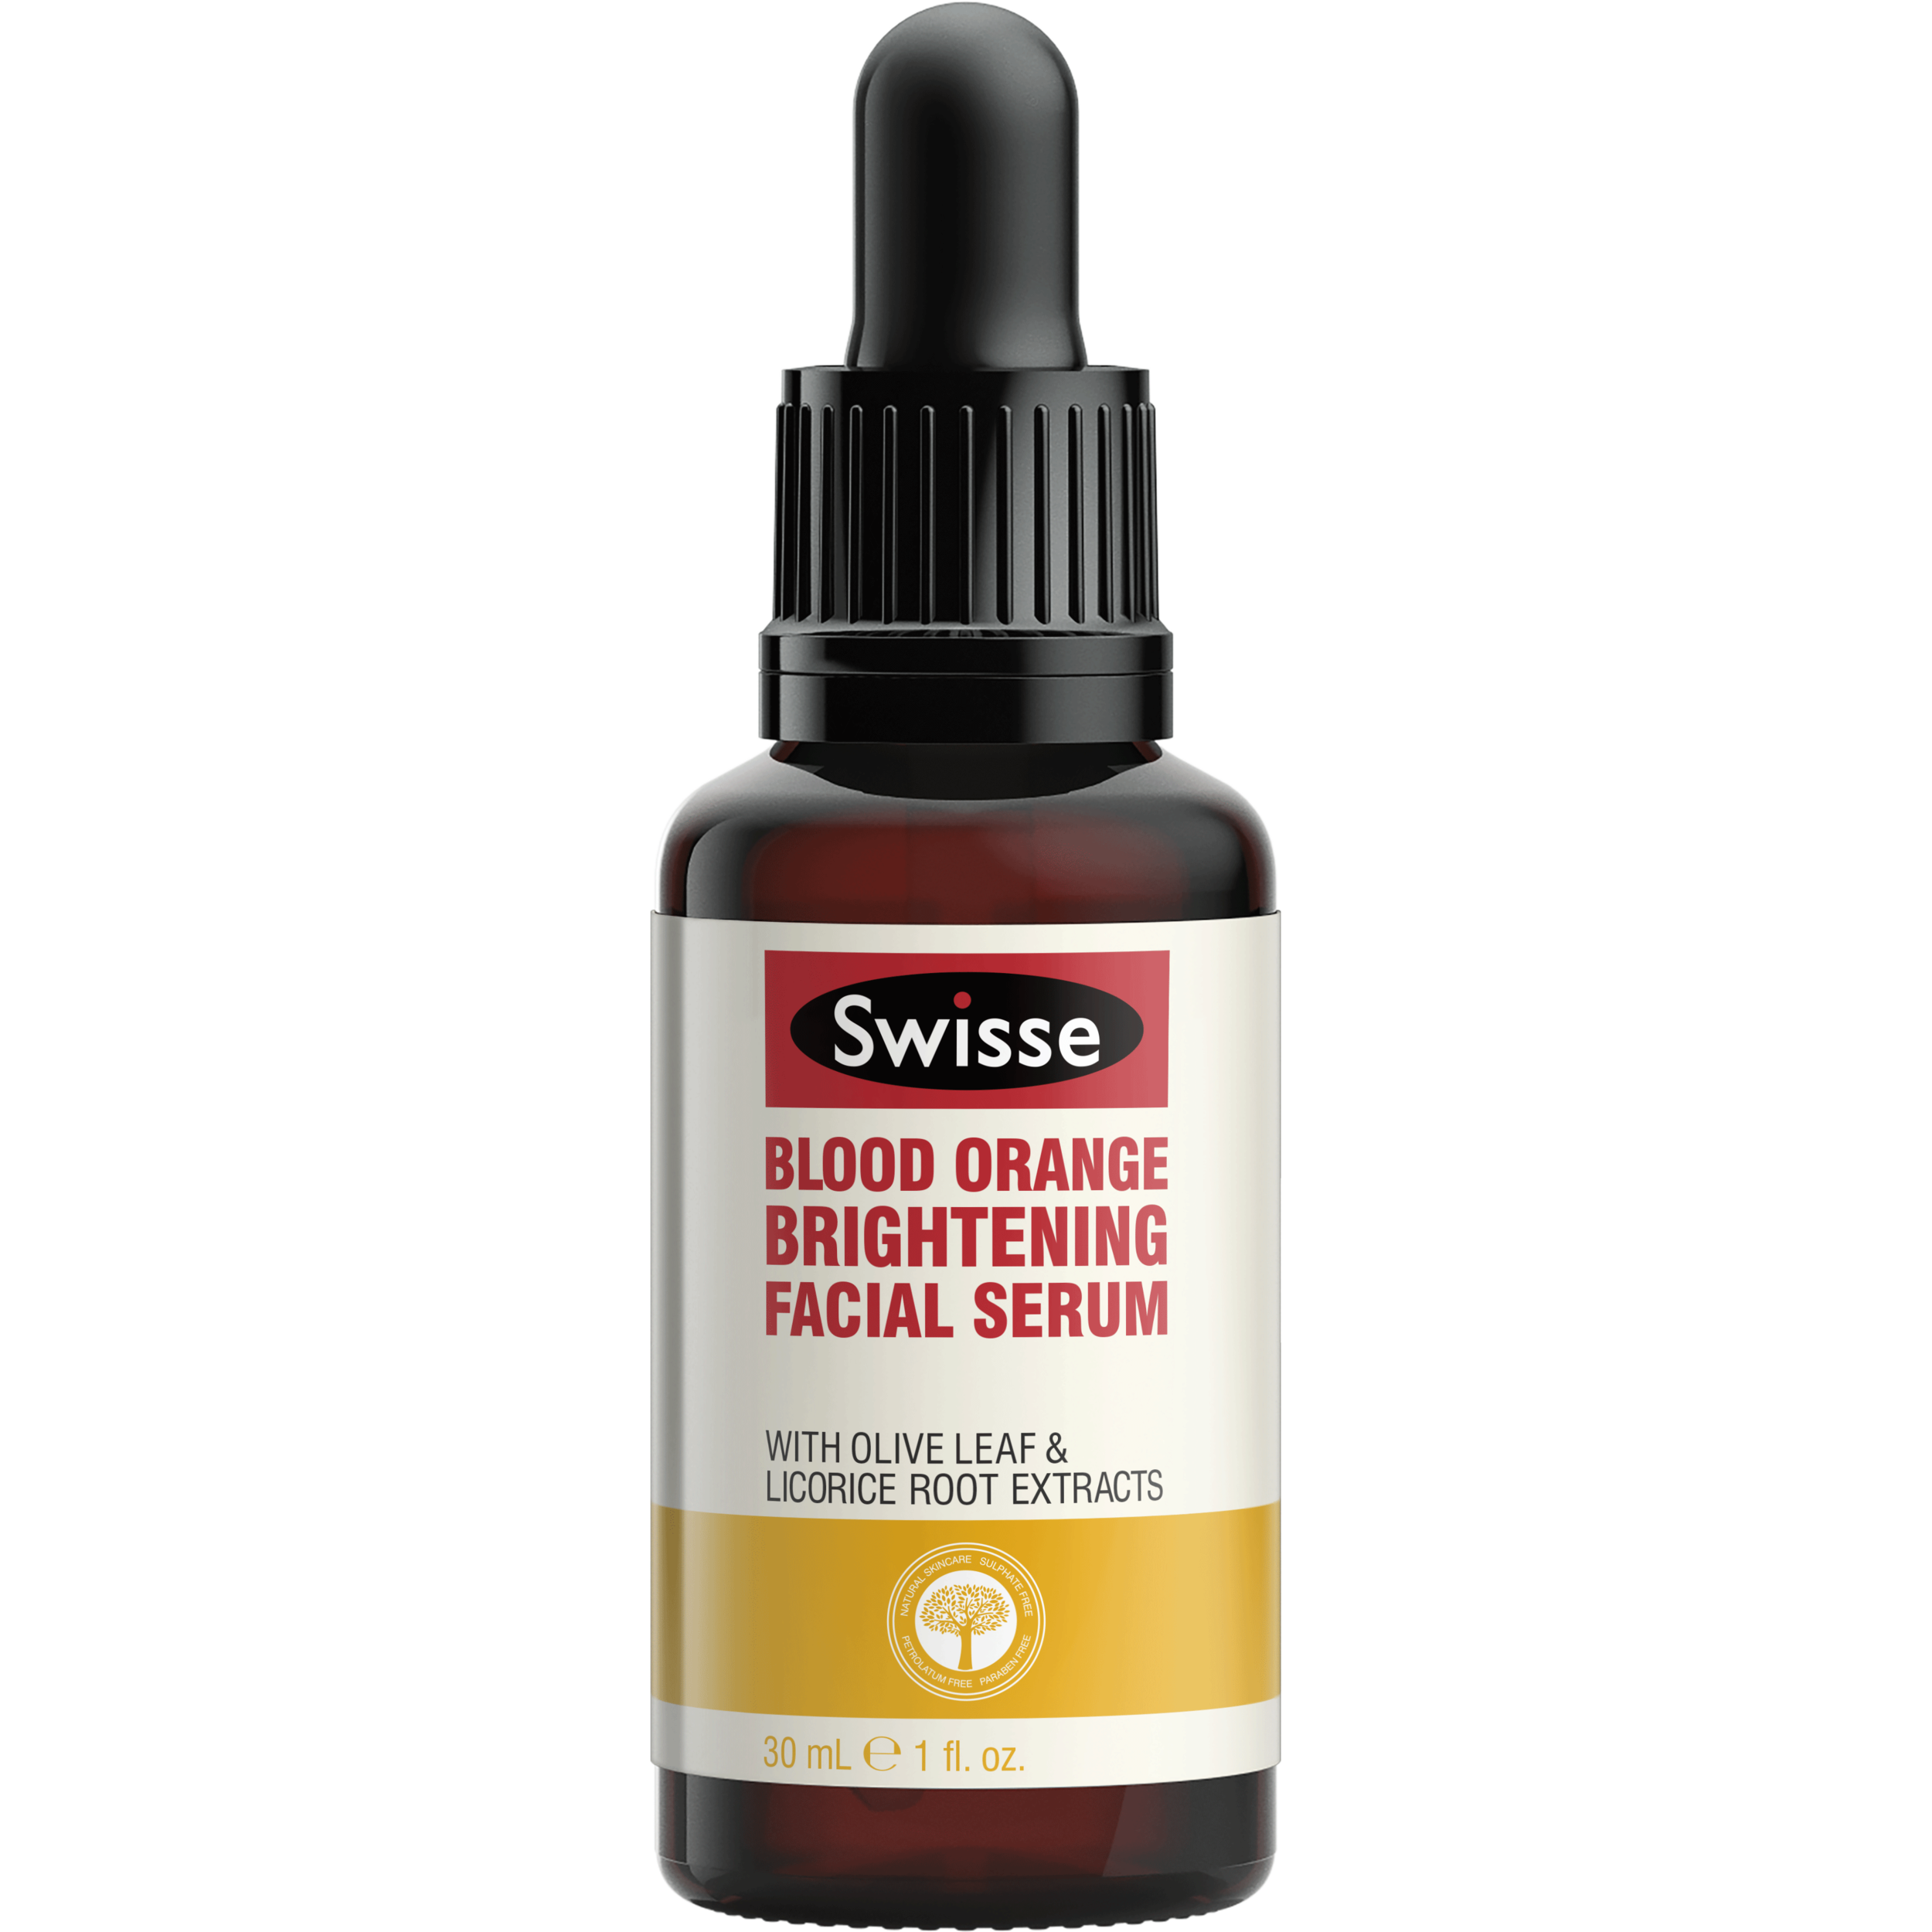 Swisse Blood Orange Brightening Facial Serum in brown bottle with white, yellow and red labelling